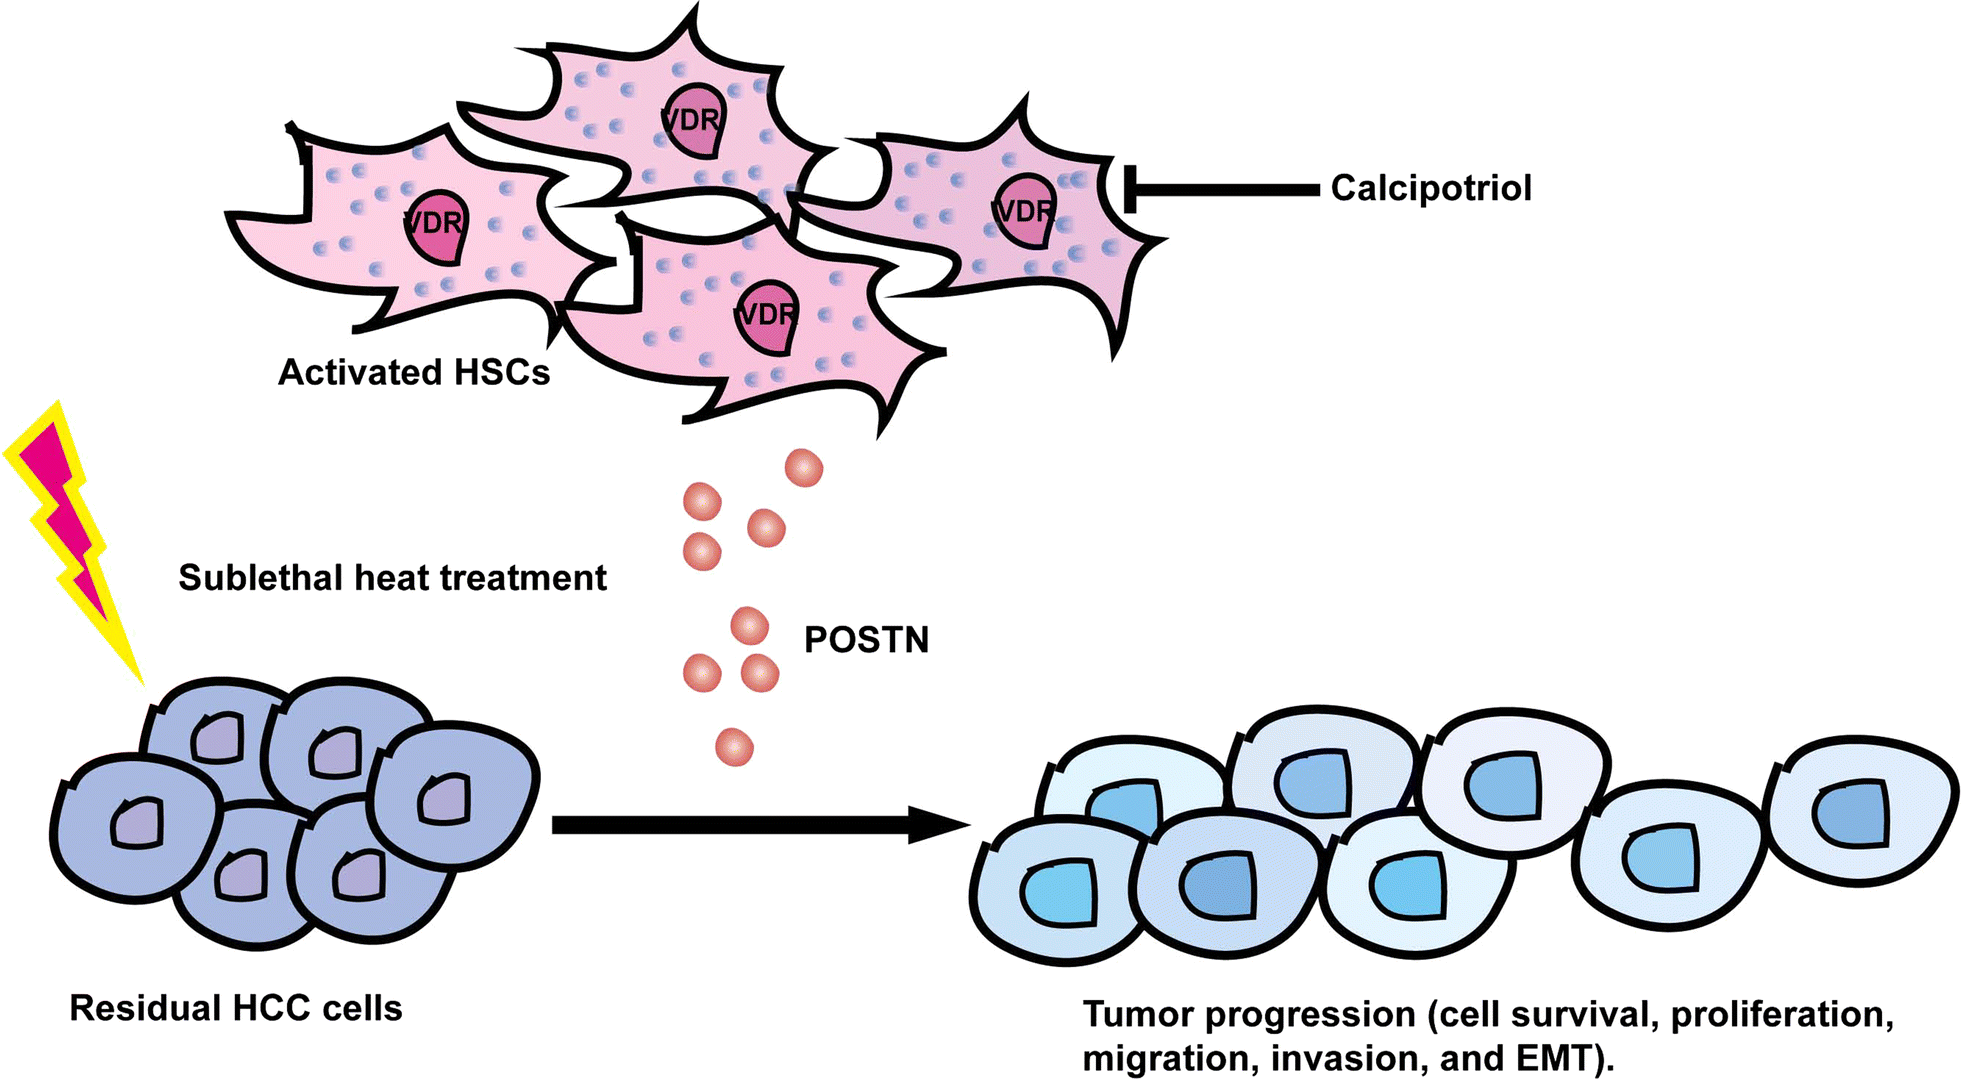 Periostin involved in the activated hepatic stellate cells